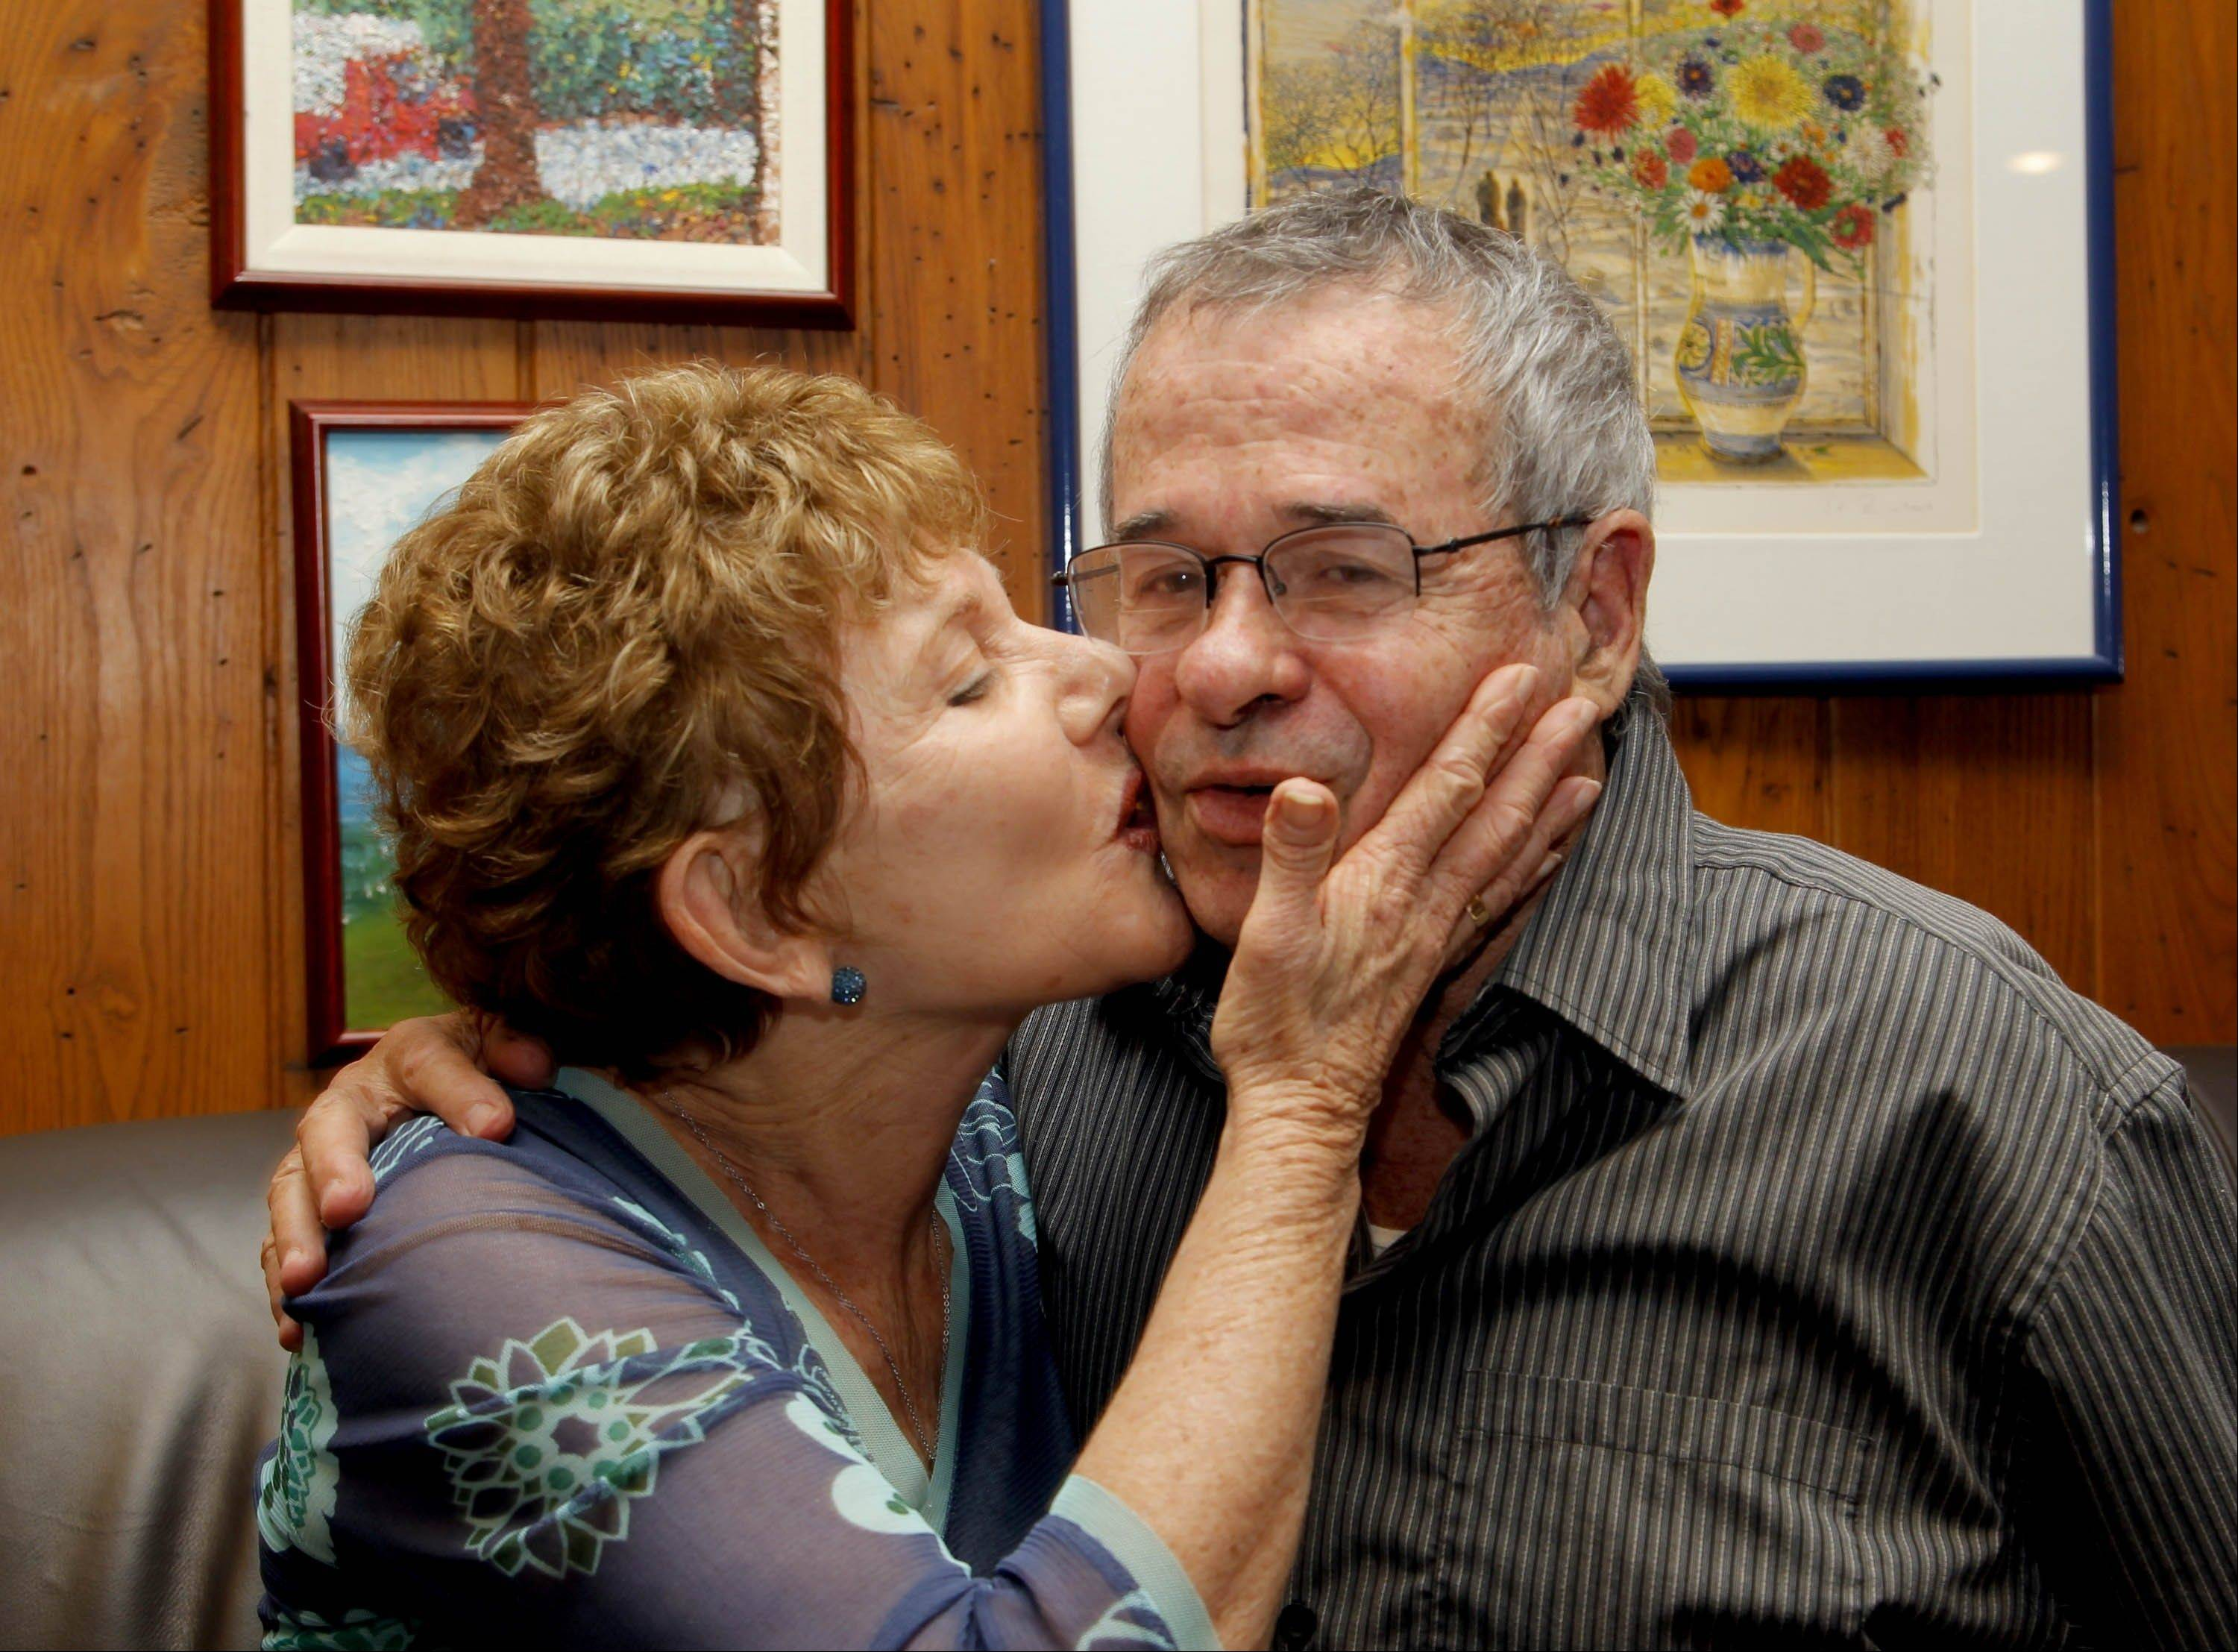 Tami Warshel kisses her husband, University of Southern California Professor of Chemistry and Biochemistry, Arieh Warshel, at his home in Los Angeles, after he was awarded the Nobel Prize in Chemistry on Wednesday.